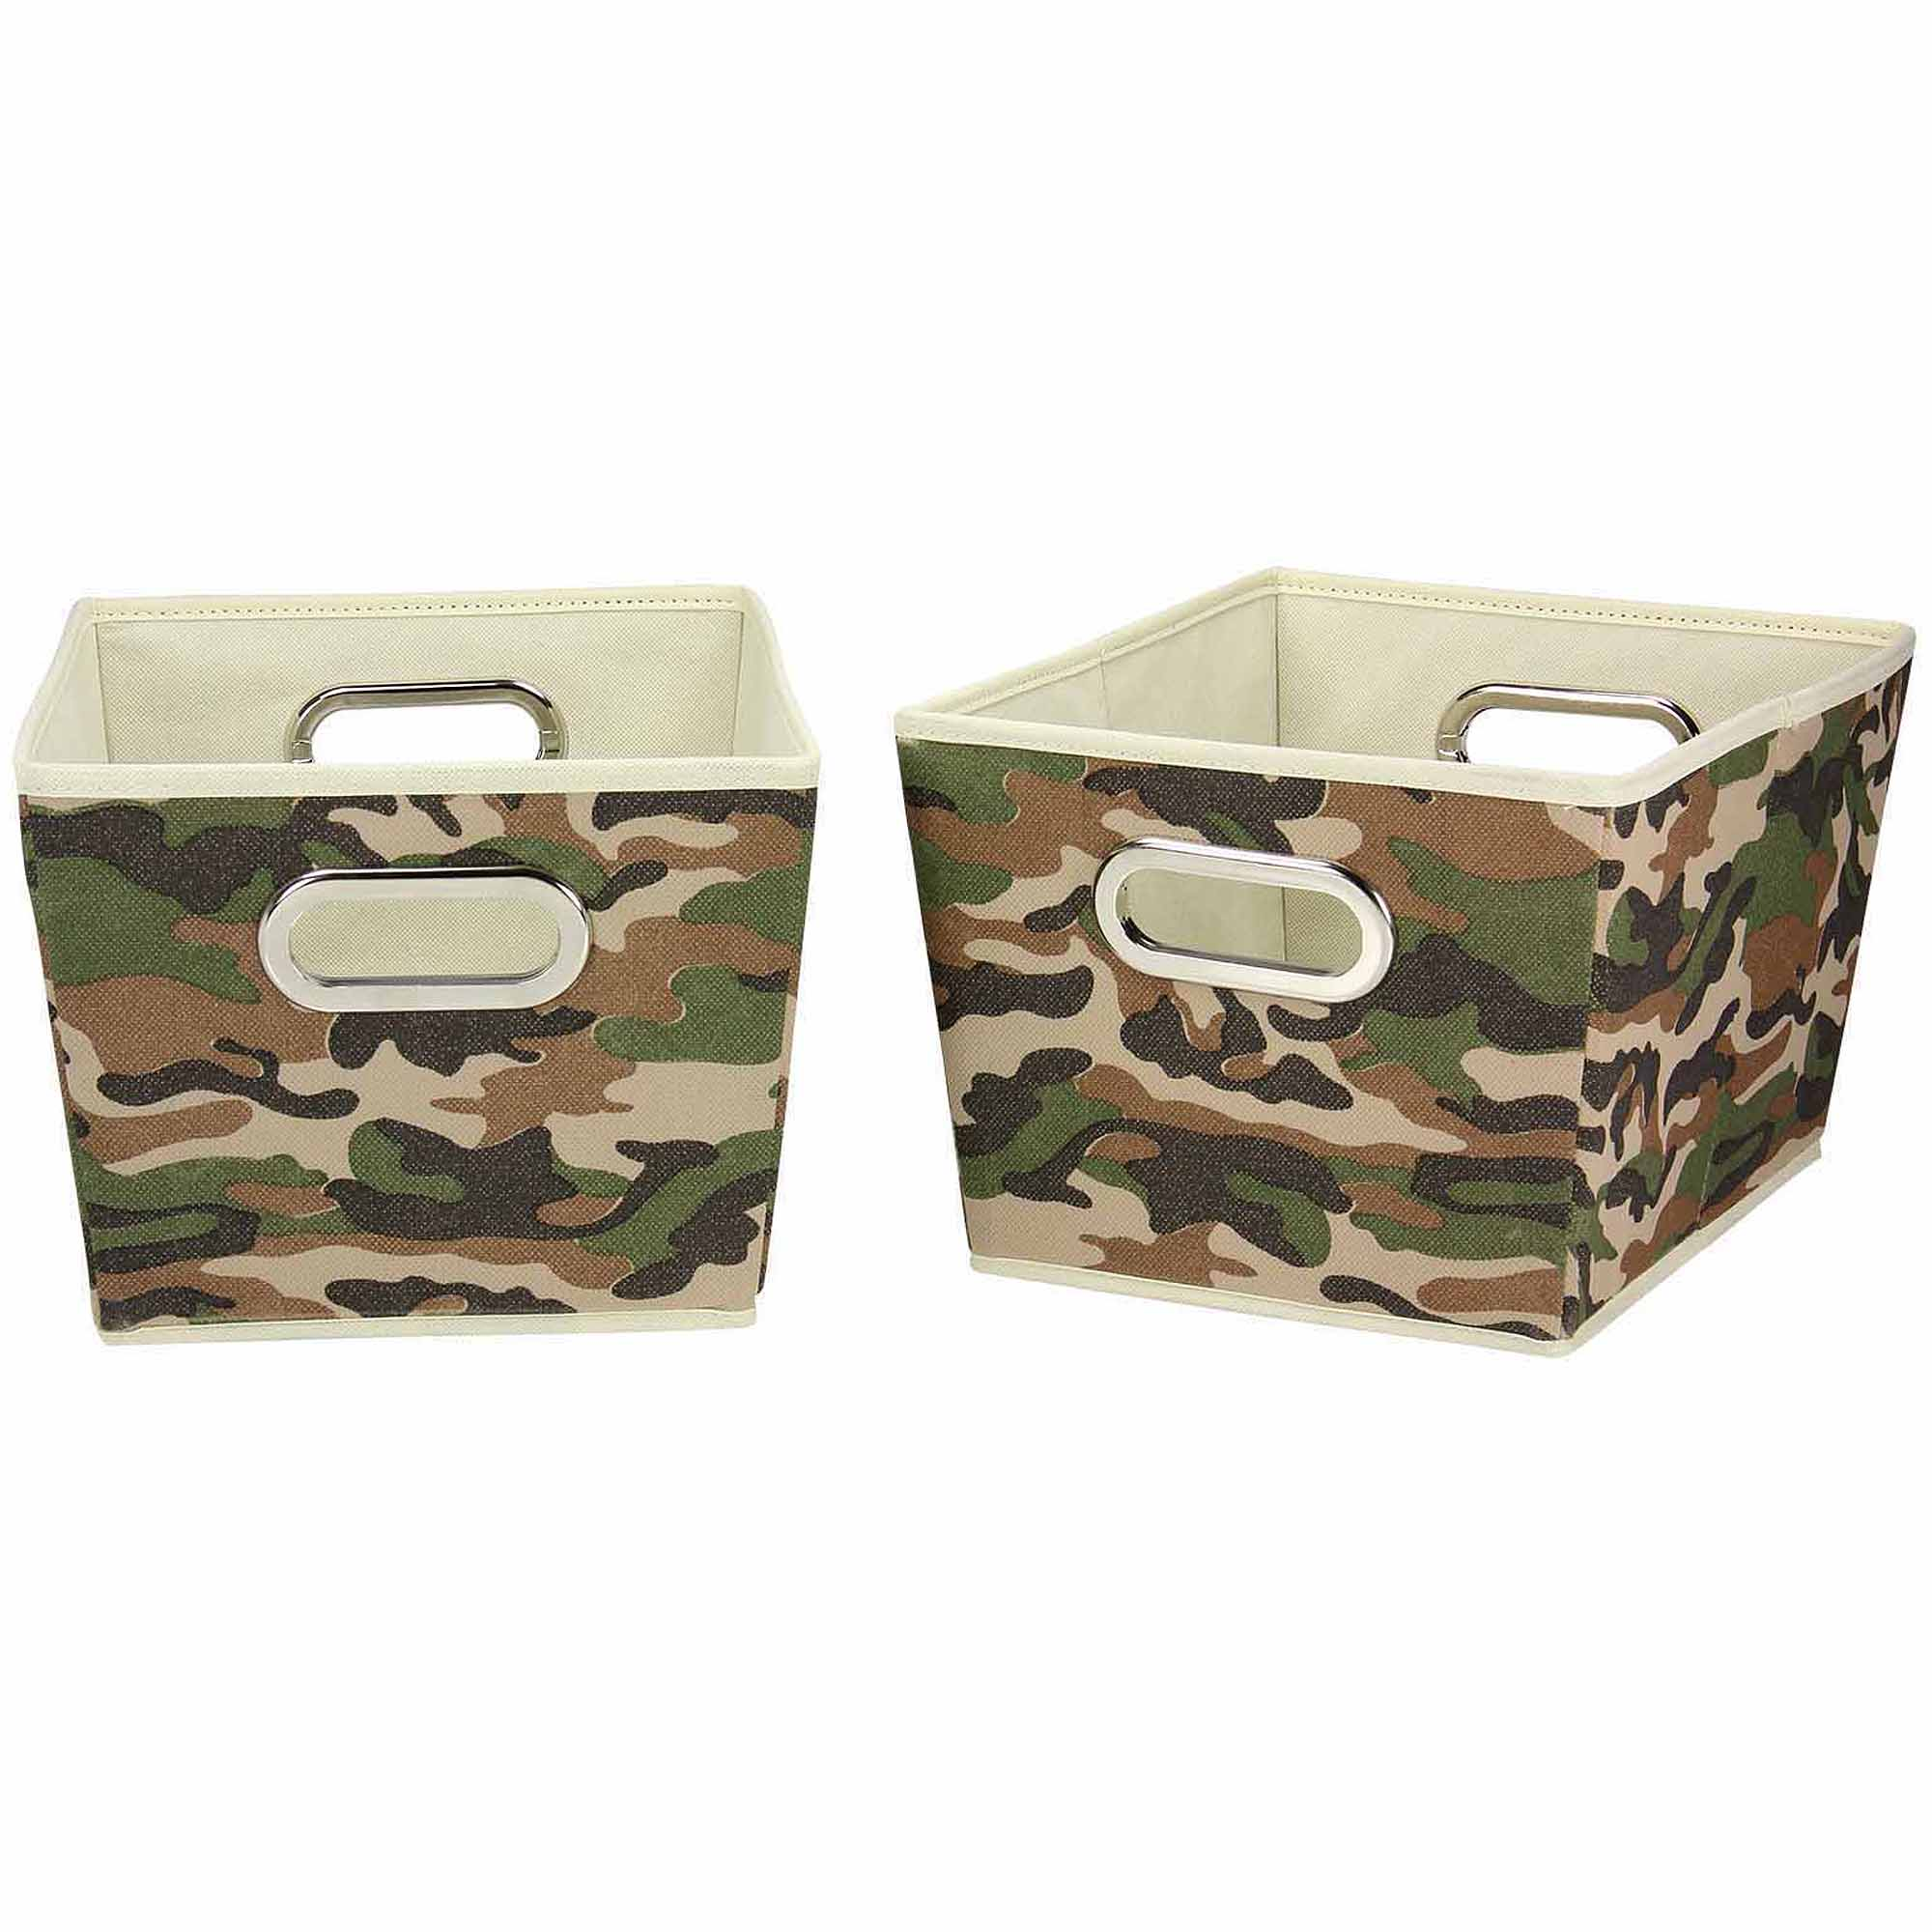 Household Essentials Decorative Storage Bins, 2pk, Small, Camo Design